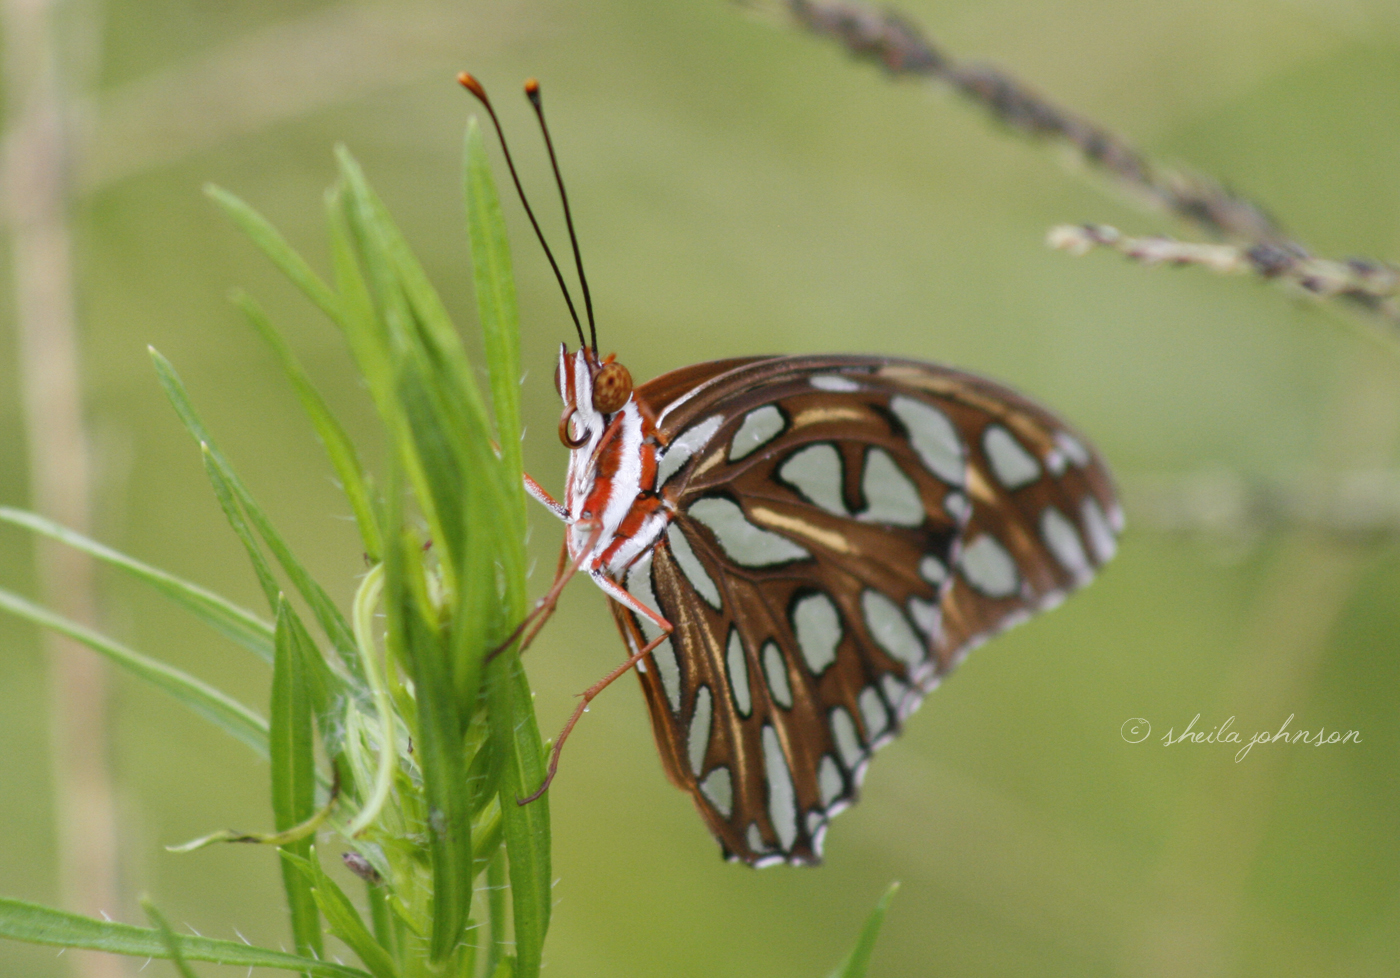 This Beauty Is Probably Our Favorite Butterfly! Though Named The Gulf Fritillary Butterfly, It's A Common (And Welcomed) Sight On The Atlantic Coast Of Florida, As Well.